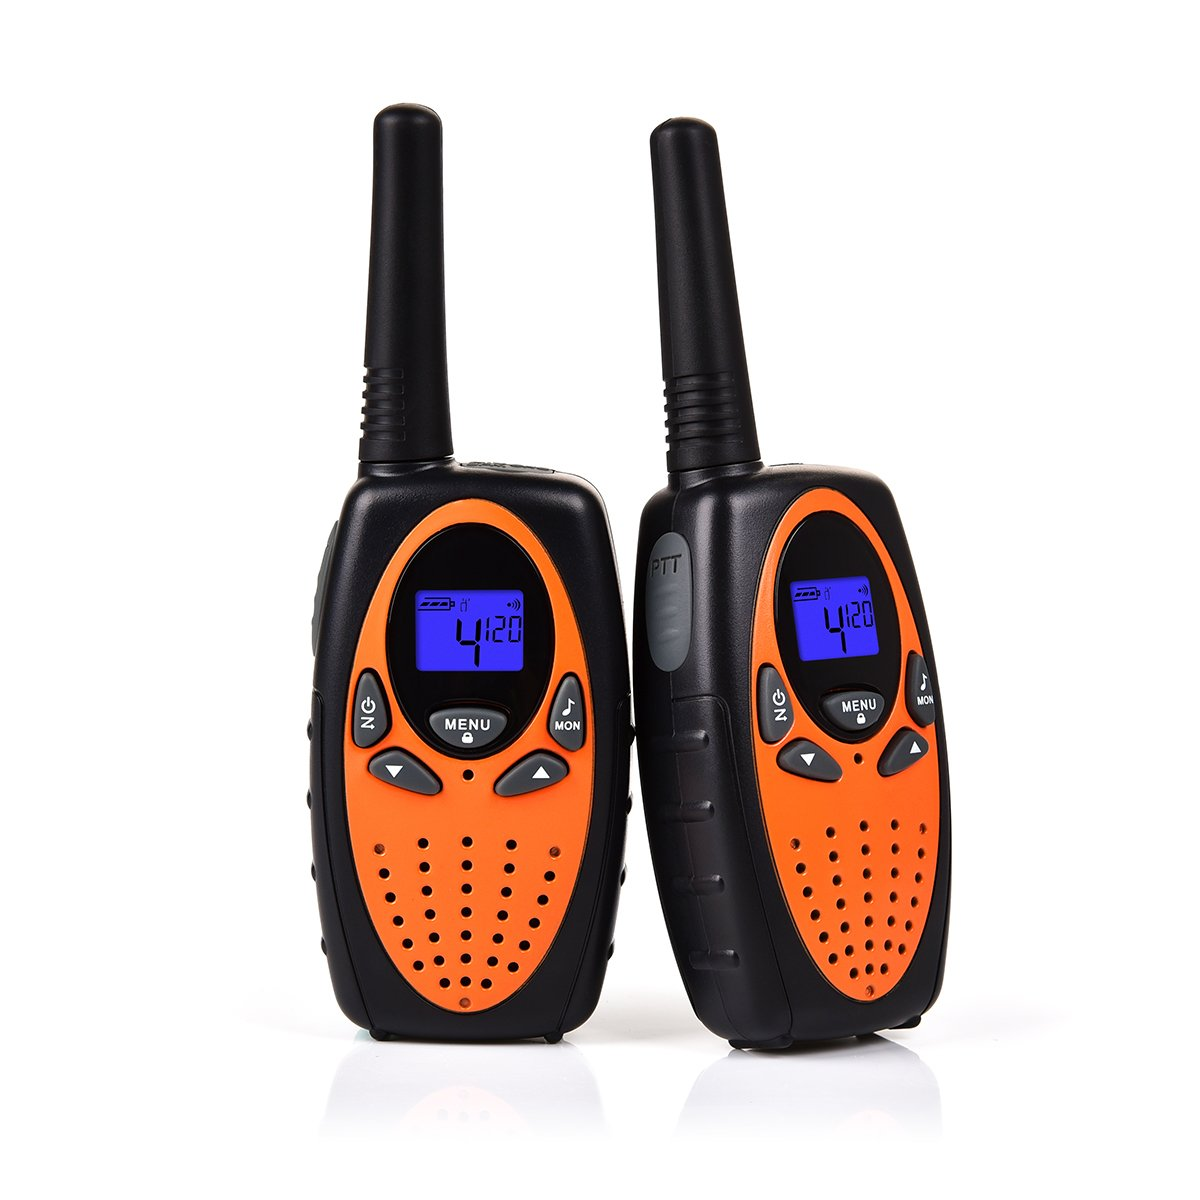 Swiftion Handheld Kids Walkie Talkies Rechargeable 22 Channel 0.5W FRS/GMRS Walky Talky for Kids 2 Way Radios (Orange,Without Charger & Batteries)